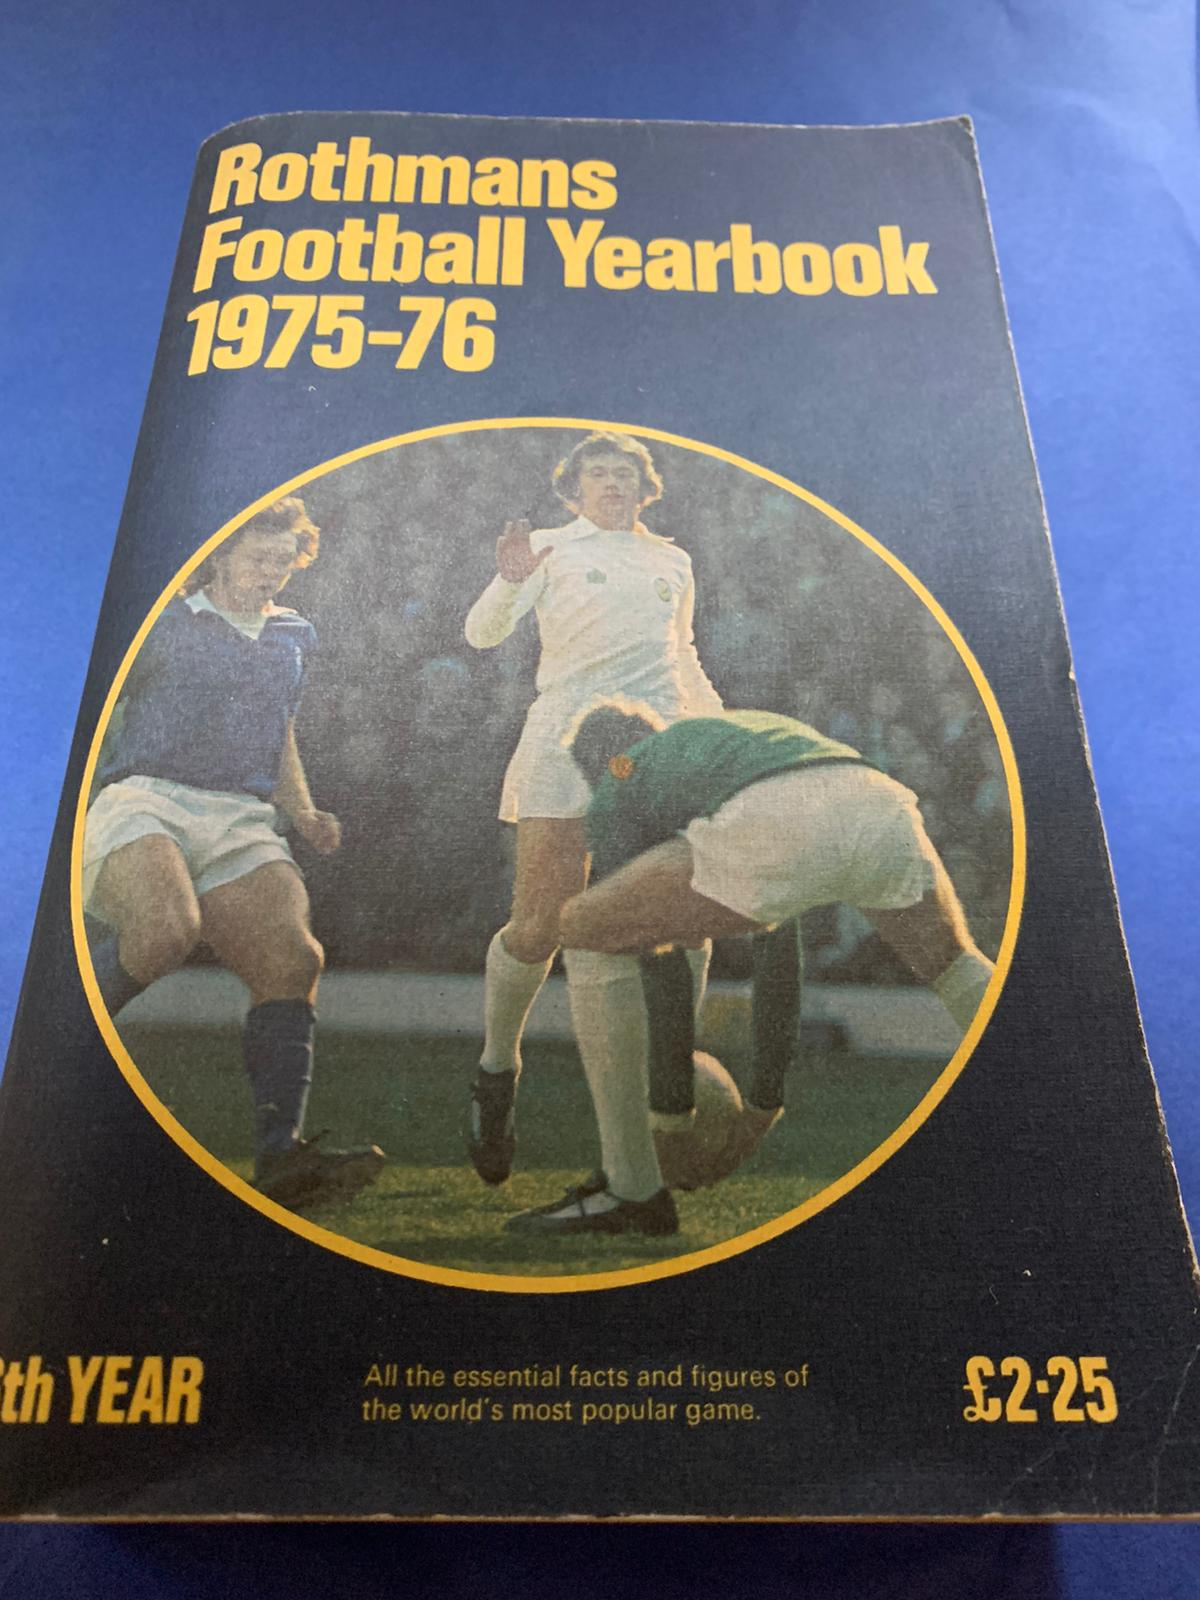 Rothmans Football Yearbook 1975-76